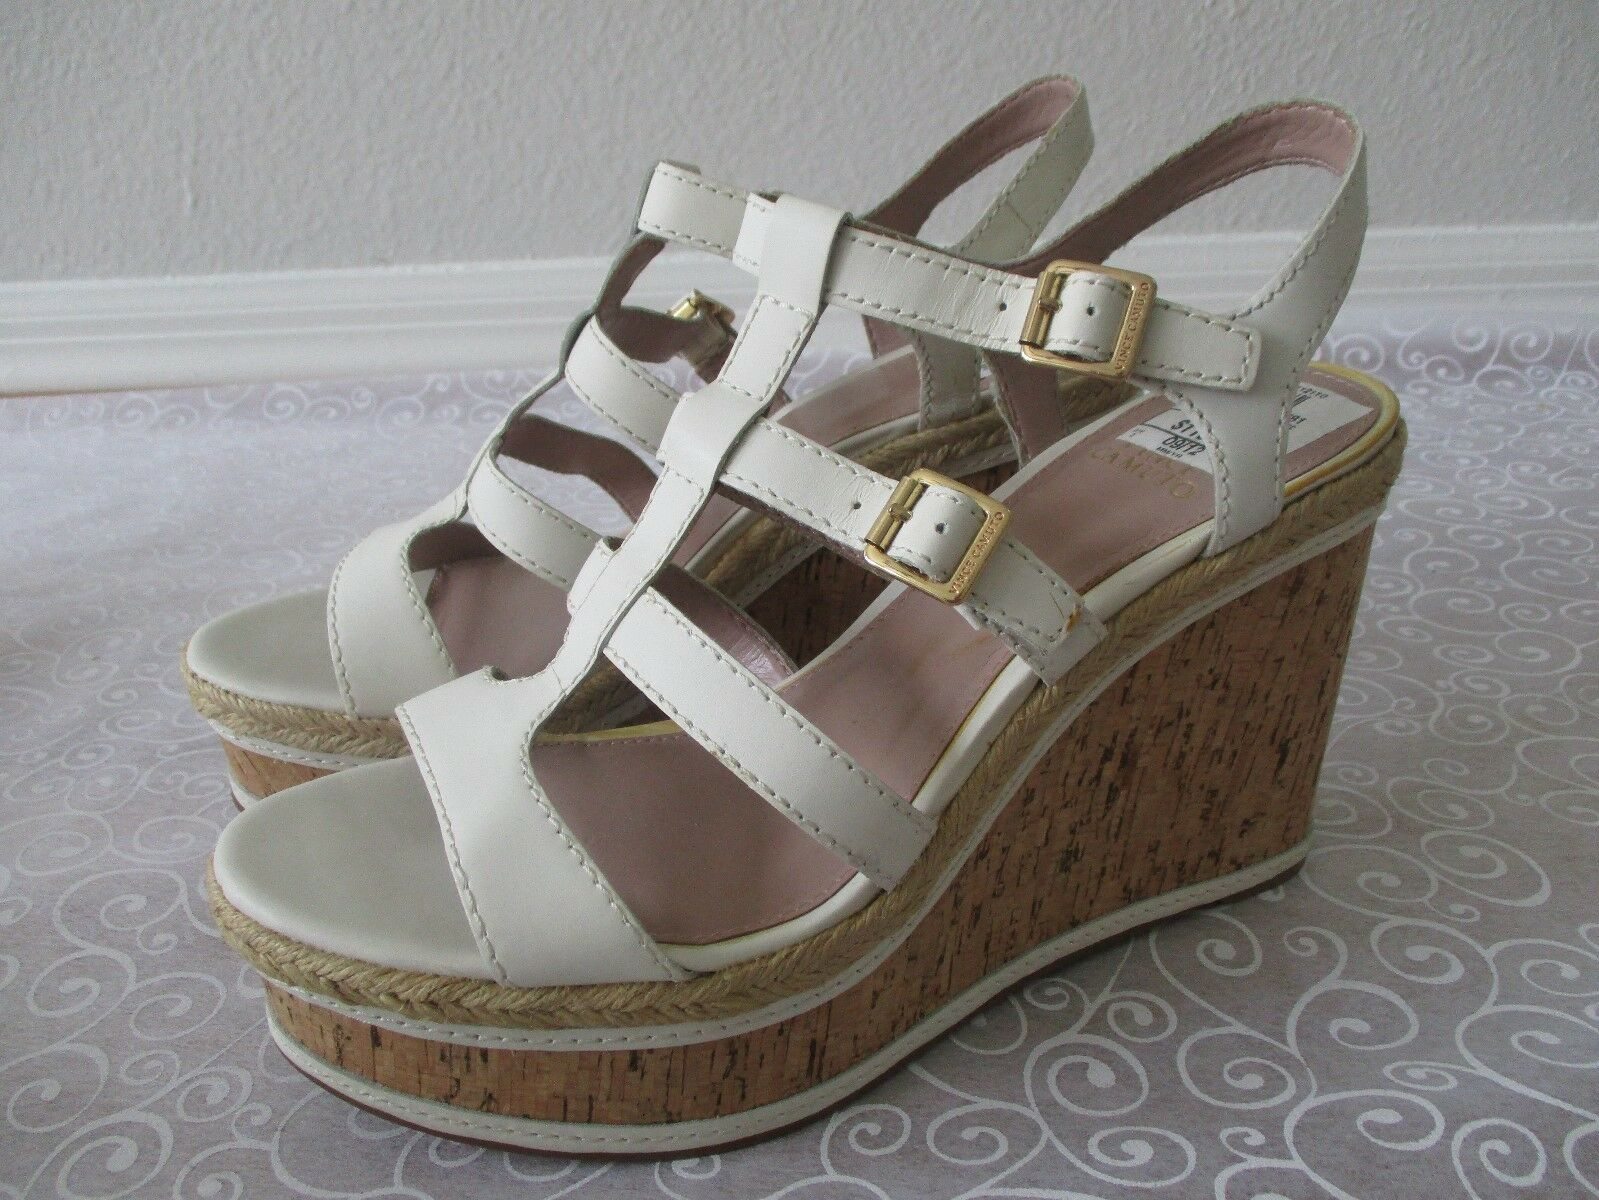 99 VINCE CAMUTO CAMUTO CAMUTO OFF Weiß LEATHER WEDGE STRAPPY schuhe Größe 11 M - NEW 3bb387